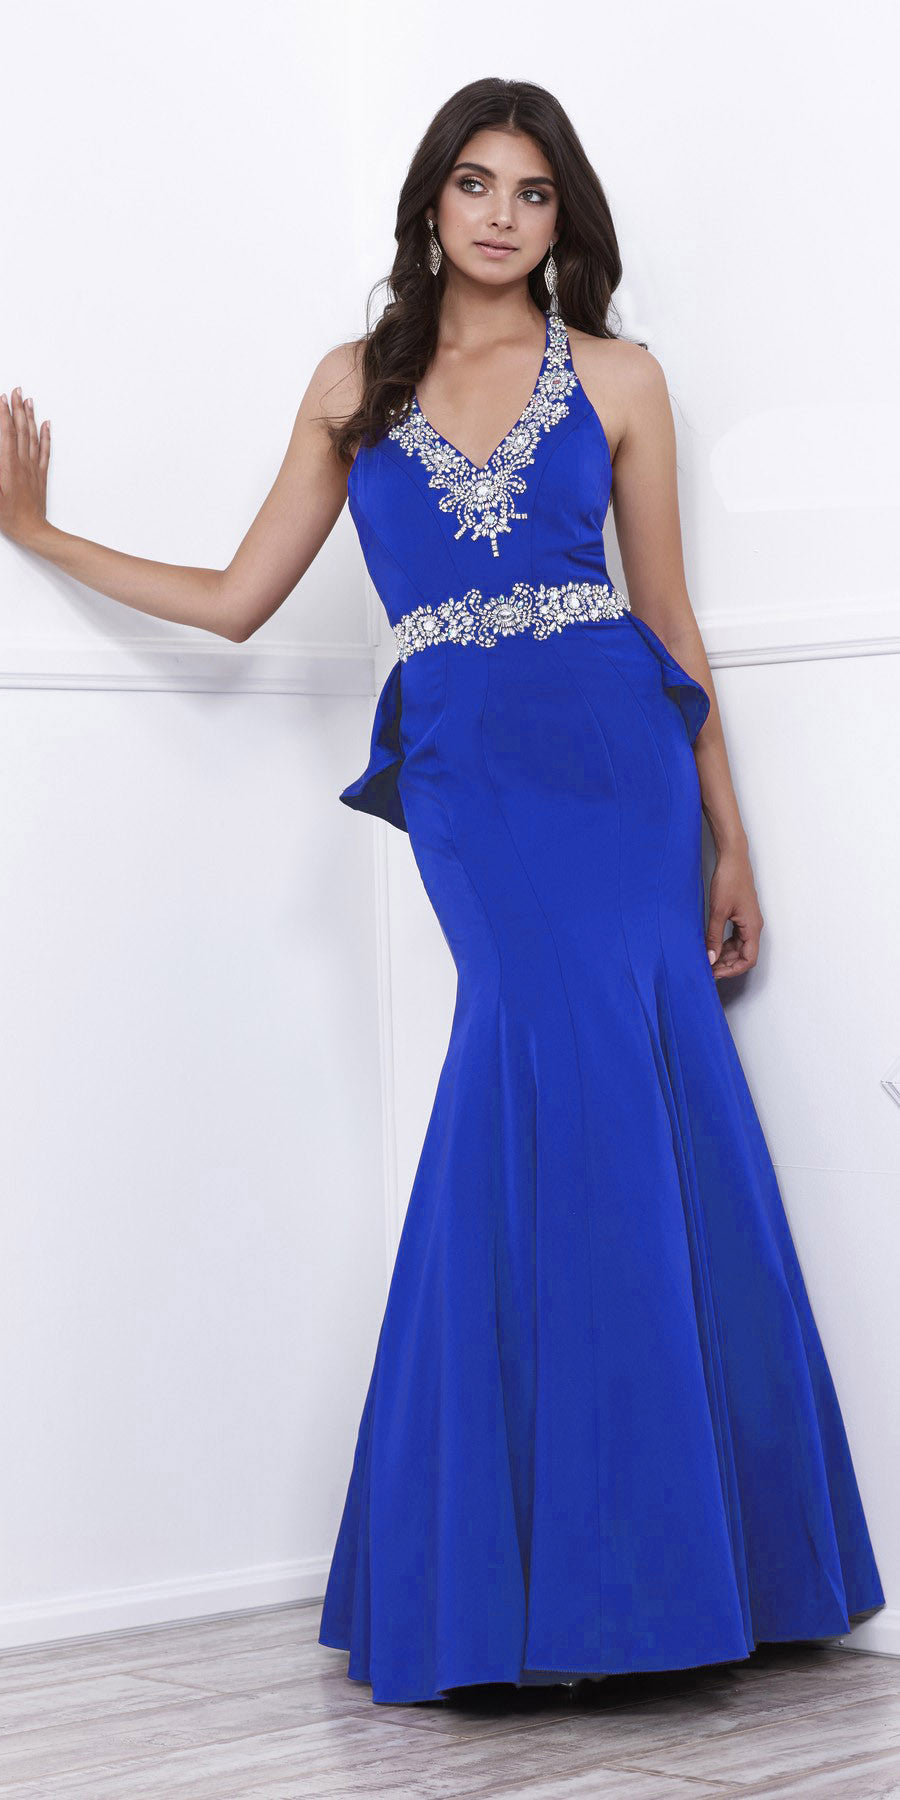 Embellished V-Neck Ruffled Cut-Out Back Mermaid Prom Dress Royal Blue